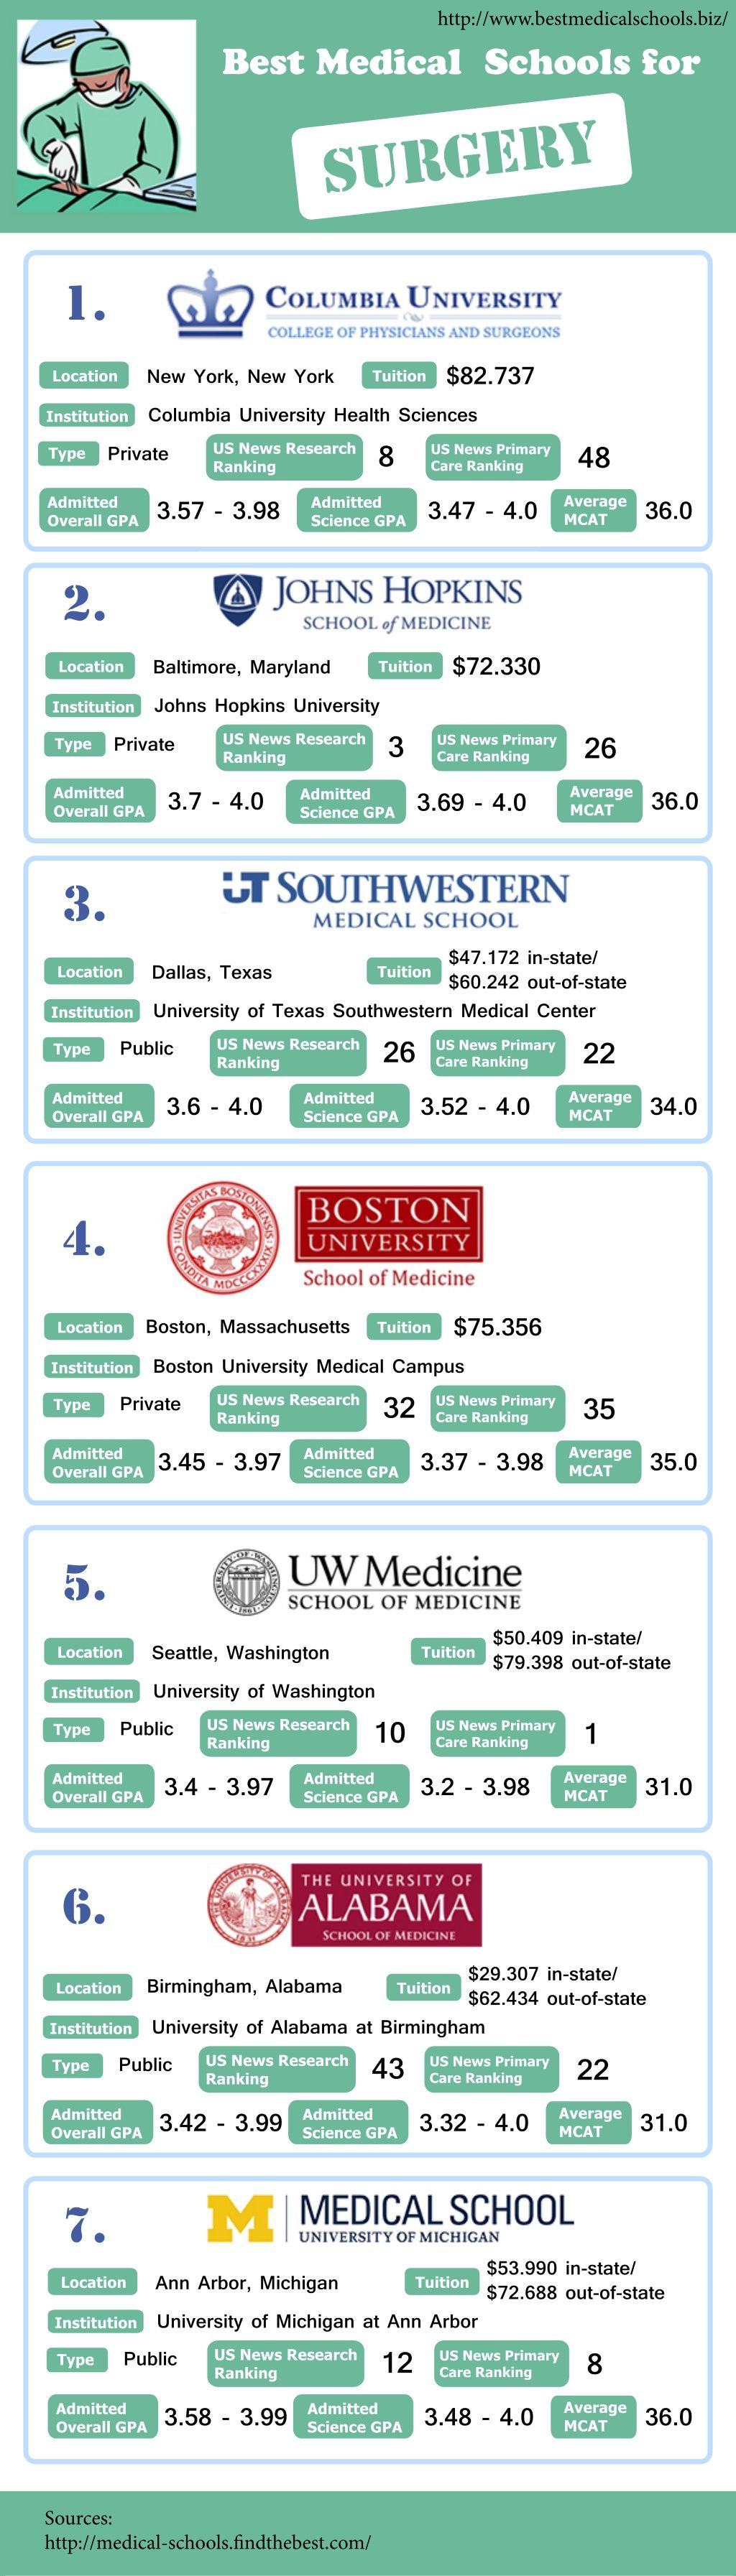 best medical schools for surgery by Best World Medical Schools Service via slideshare